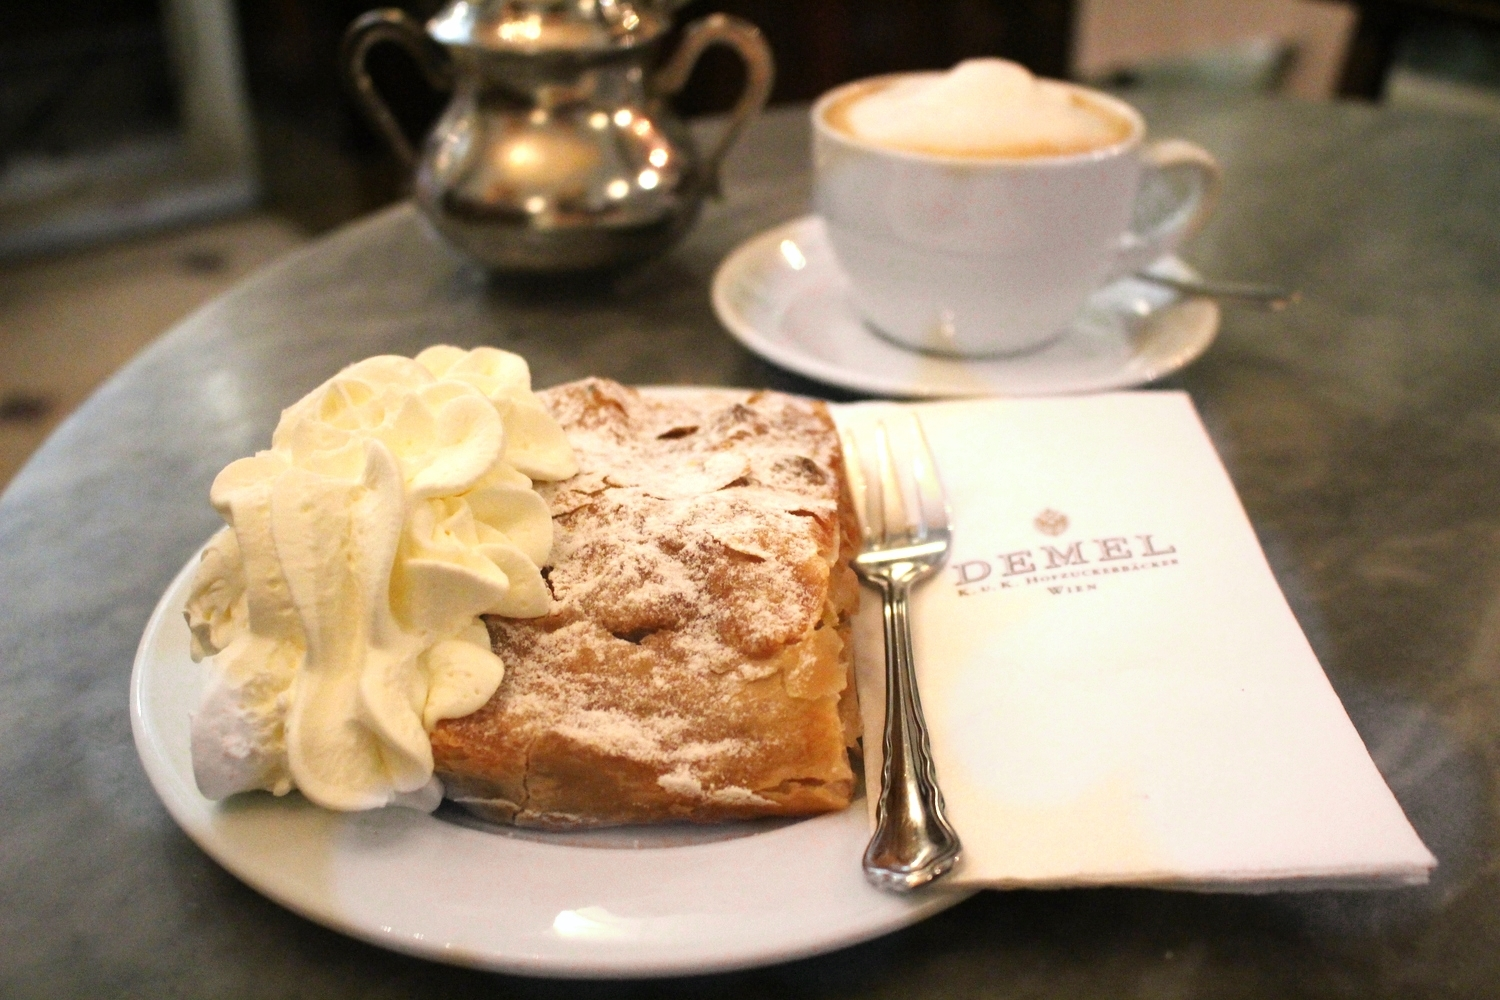 Apple strudel at Demel (photo: Anne Banas)